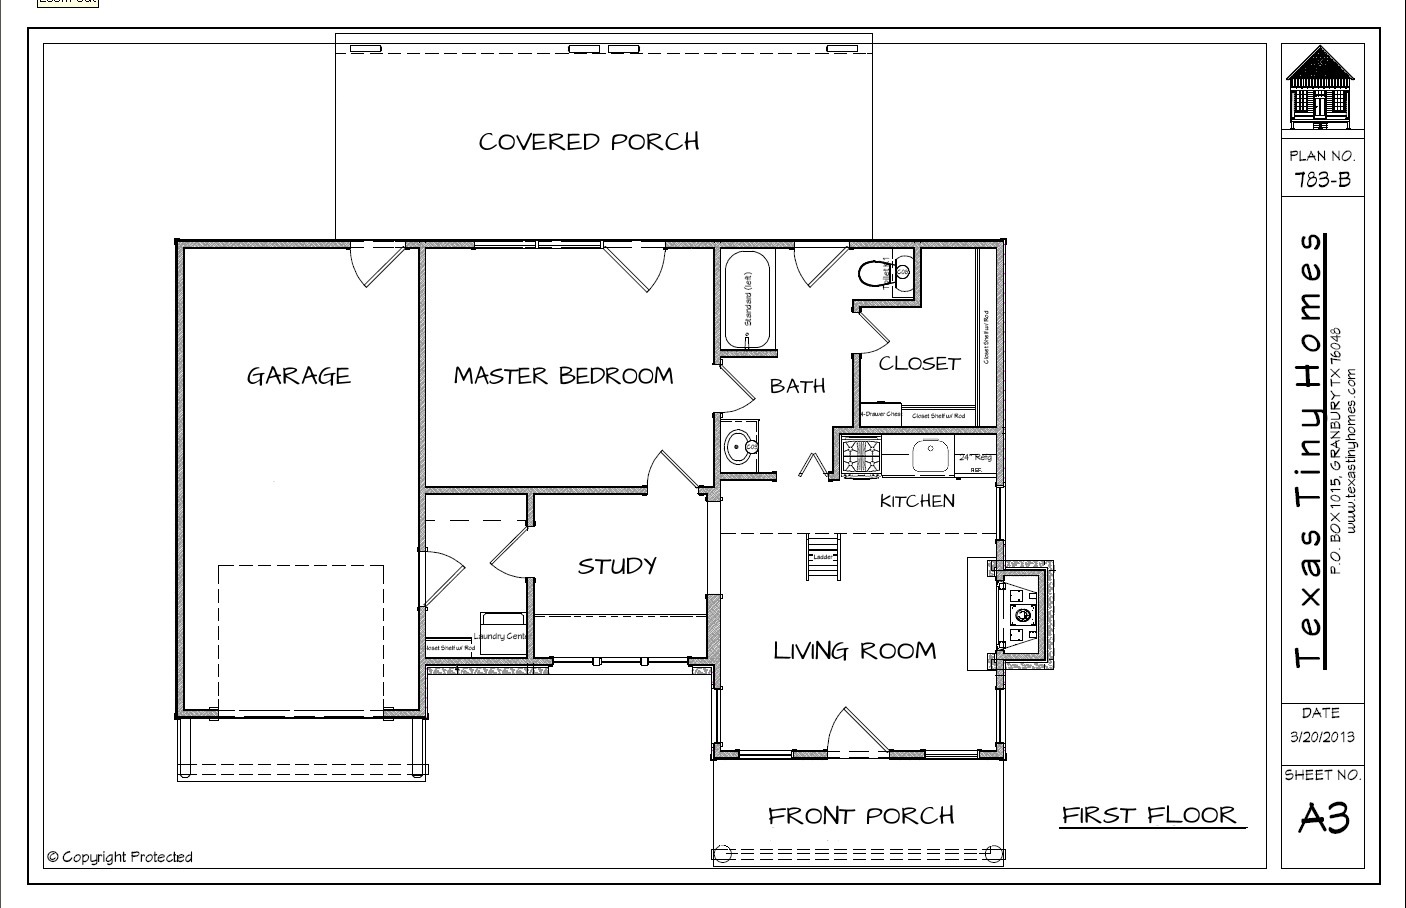 tiny house plans small house plans little house plans micro house plans - Micro House Plans